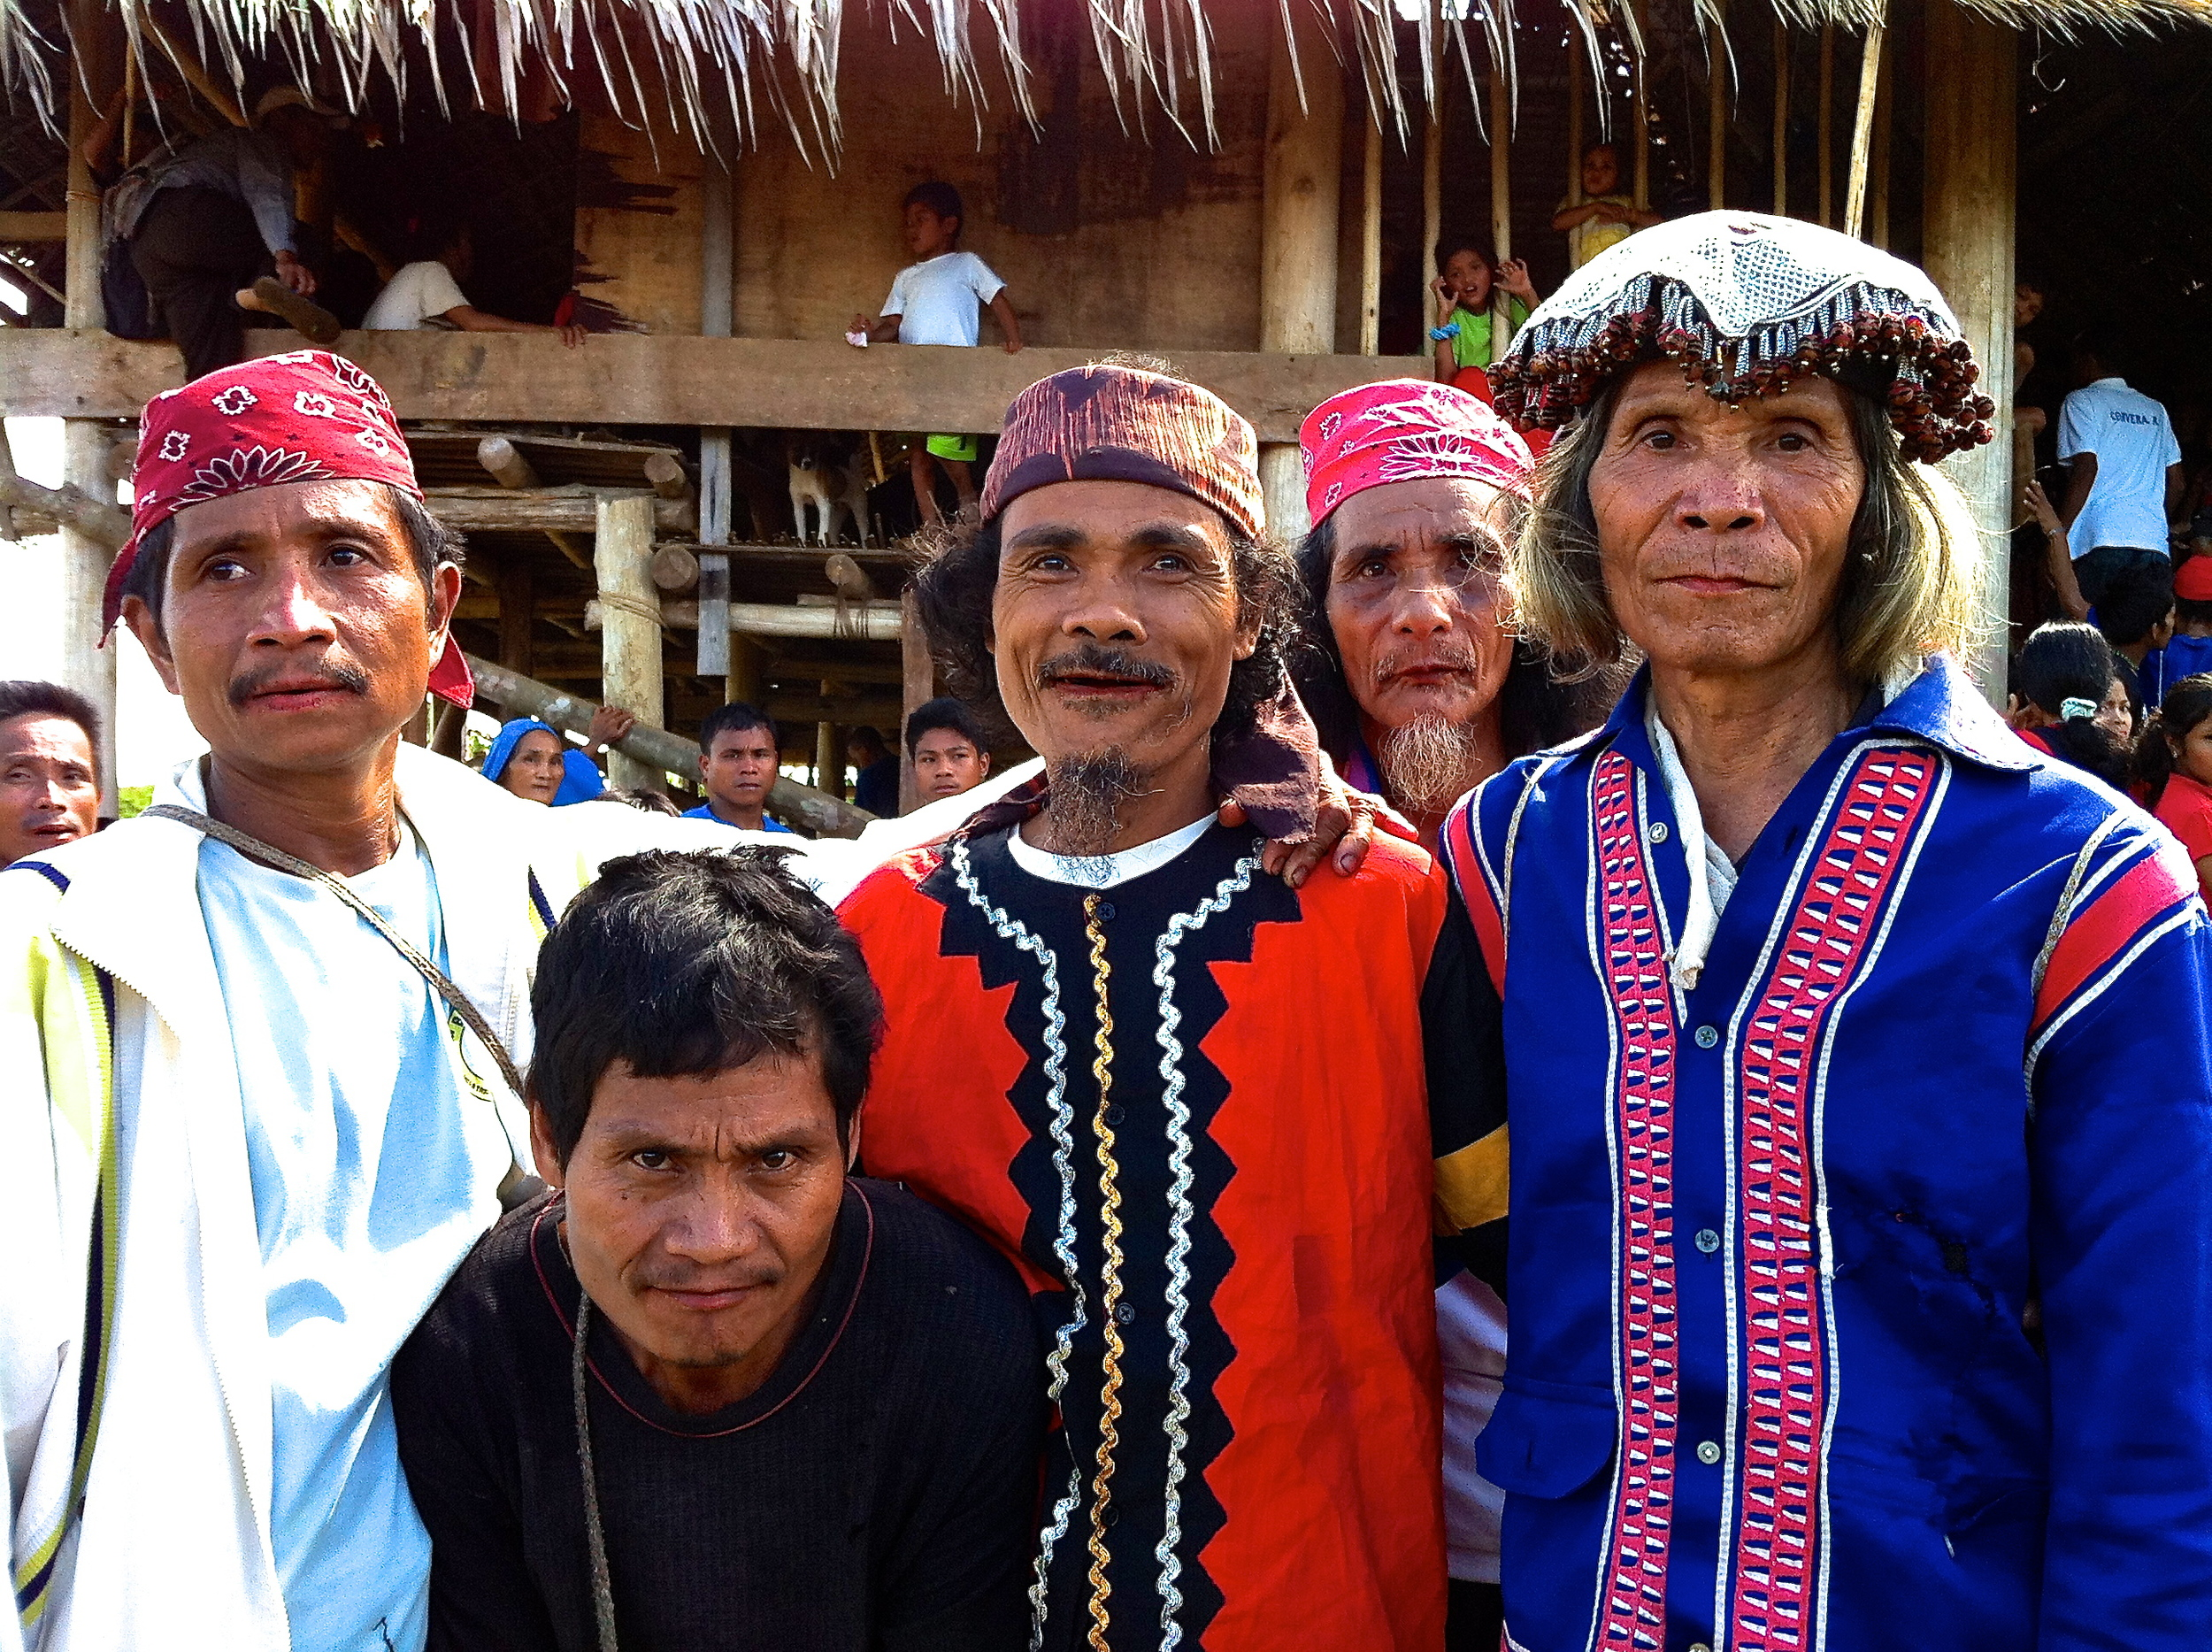 The tribal chiefs ask us to build them schools to protect and educate their children